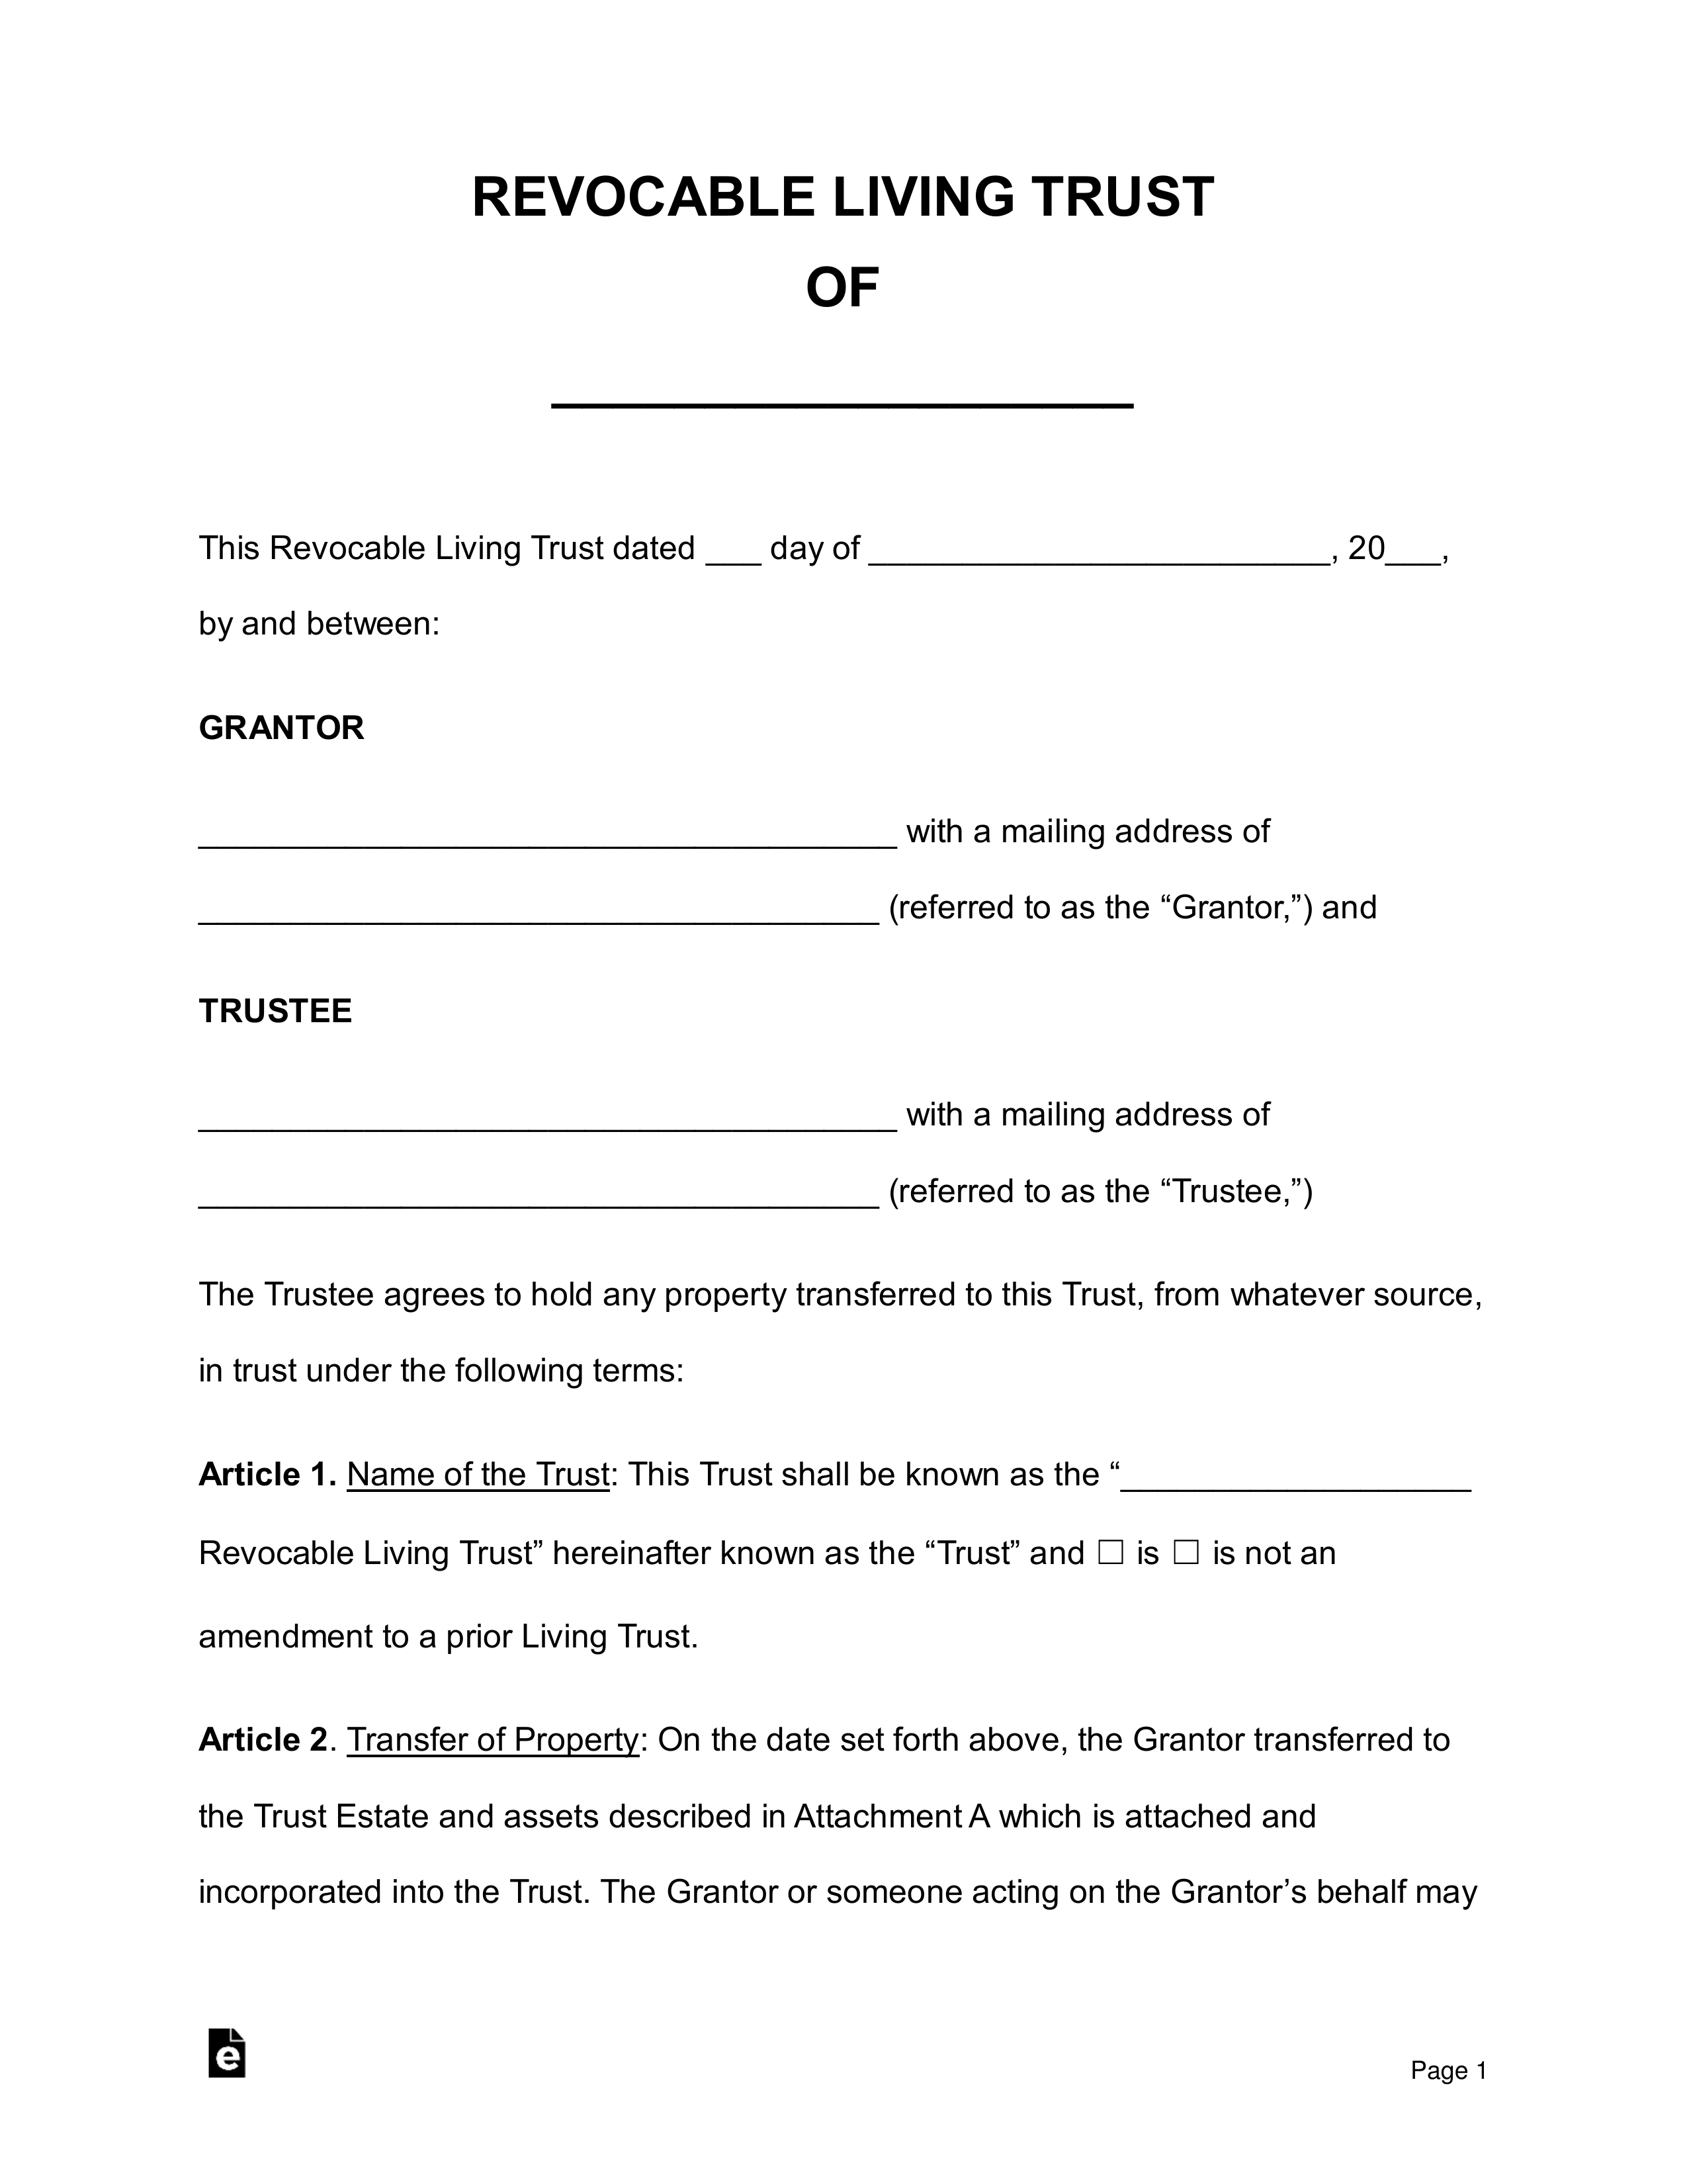 Free Revocable Living Trust Forms Pdf Word Eforms